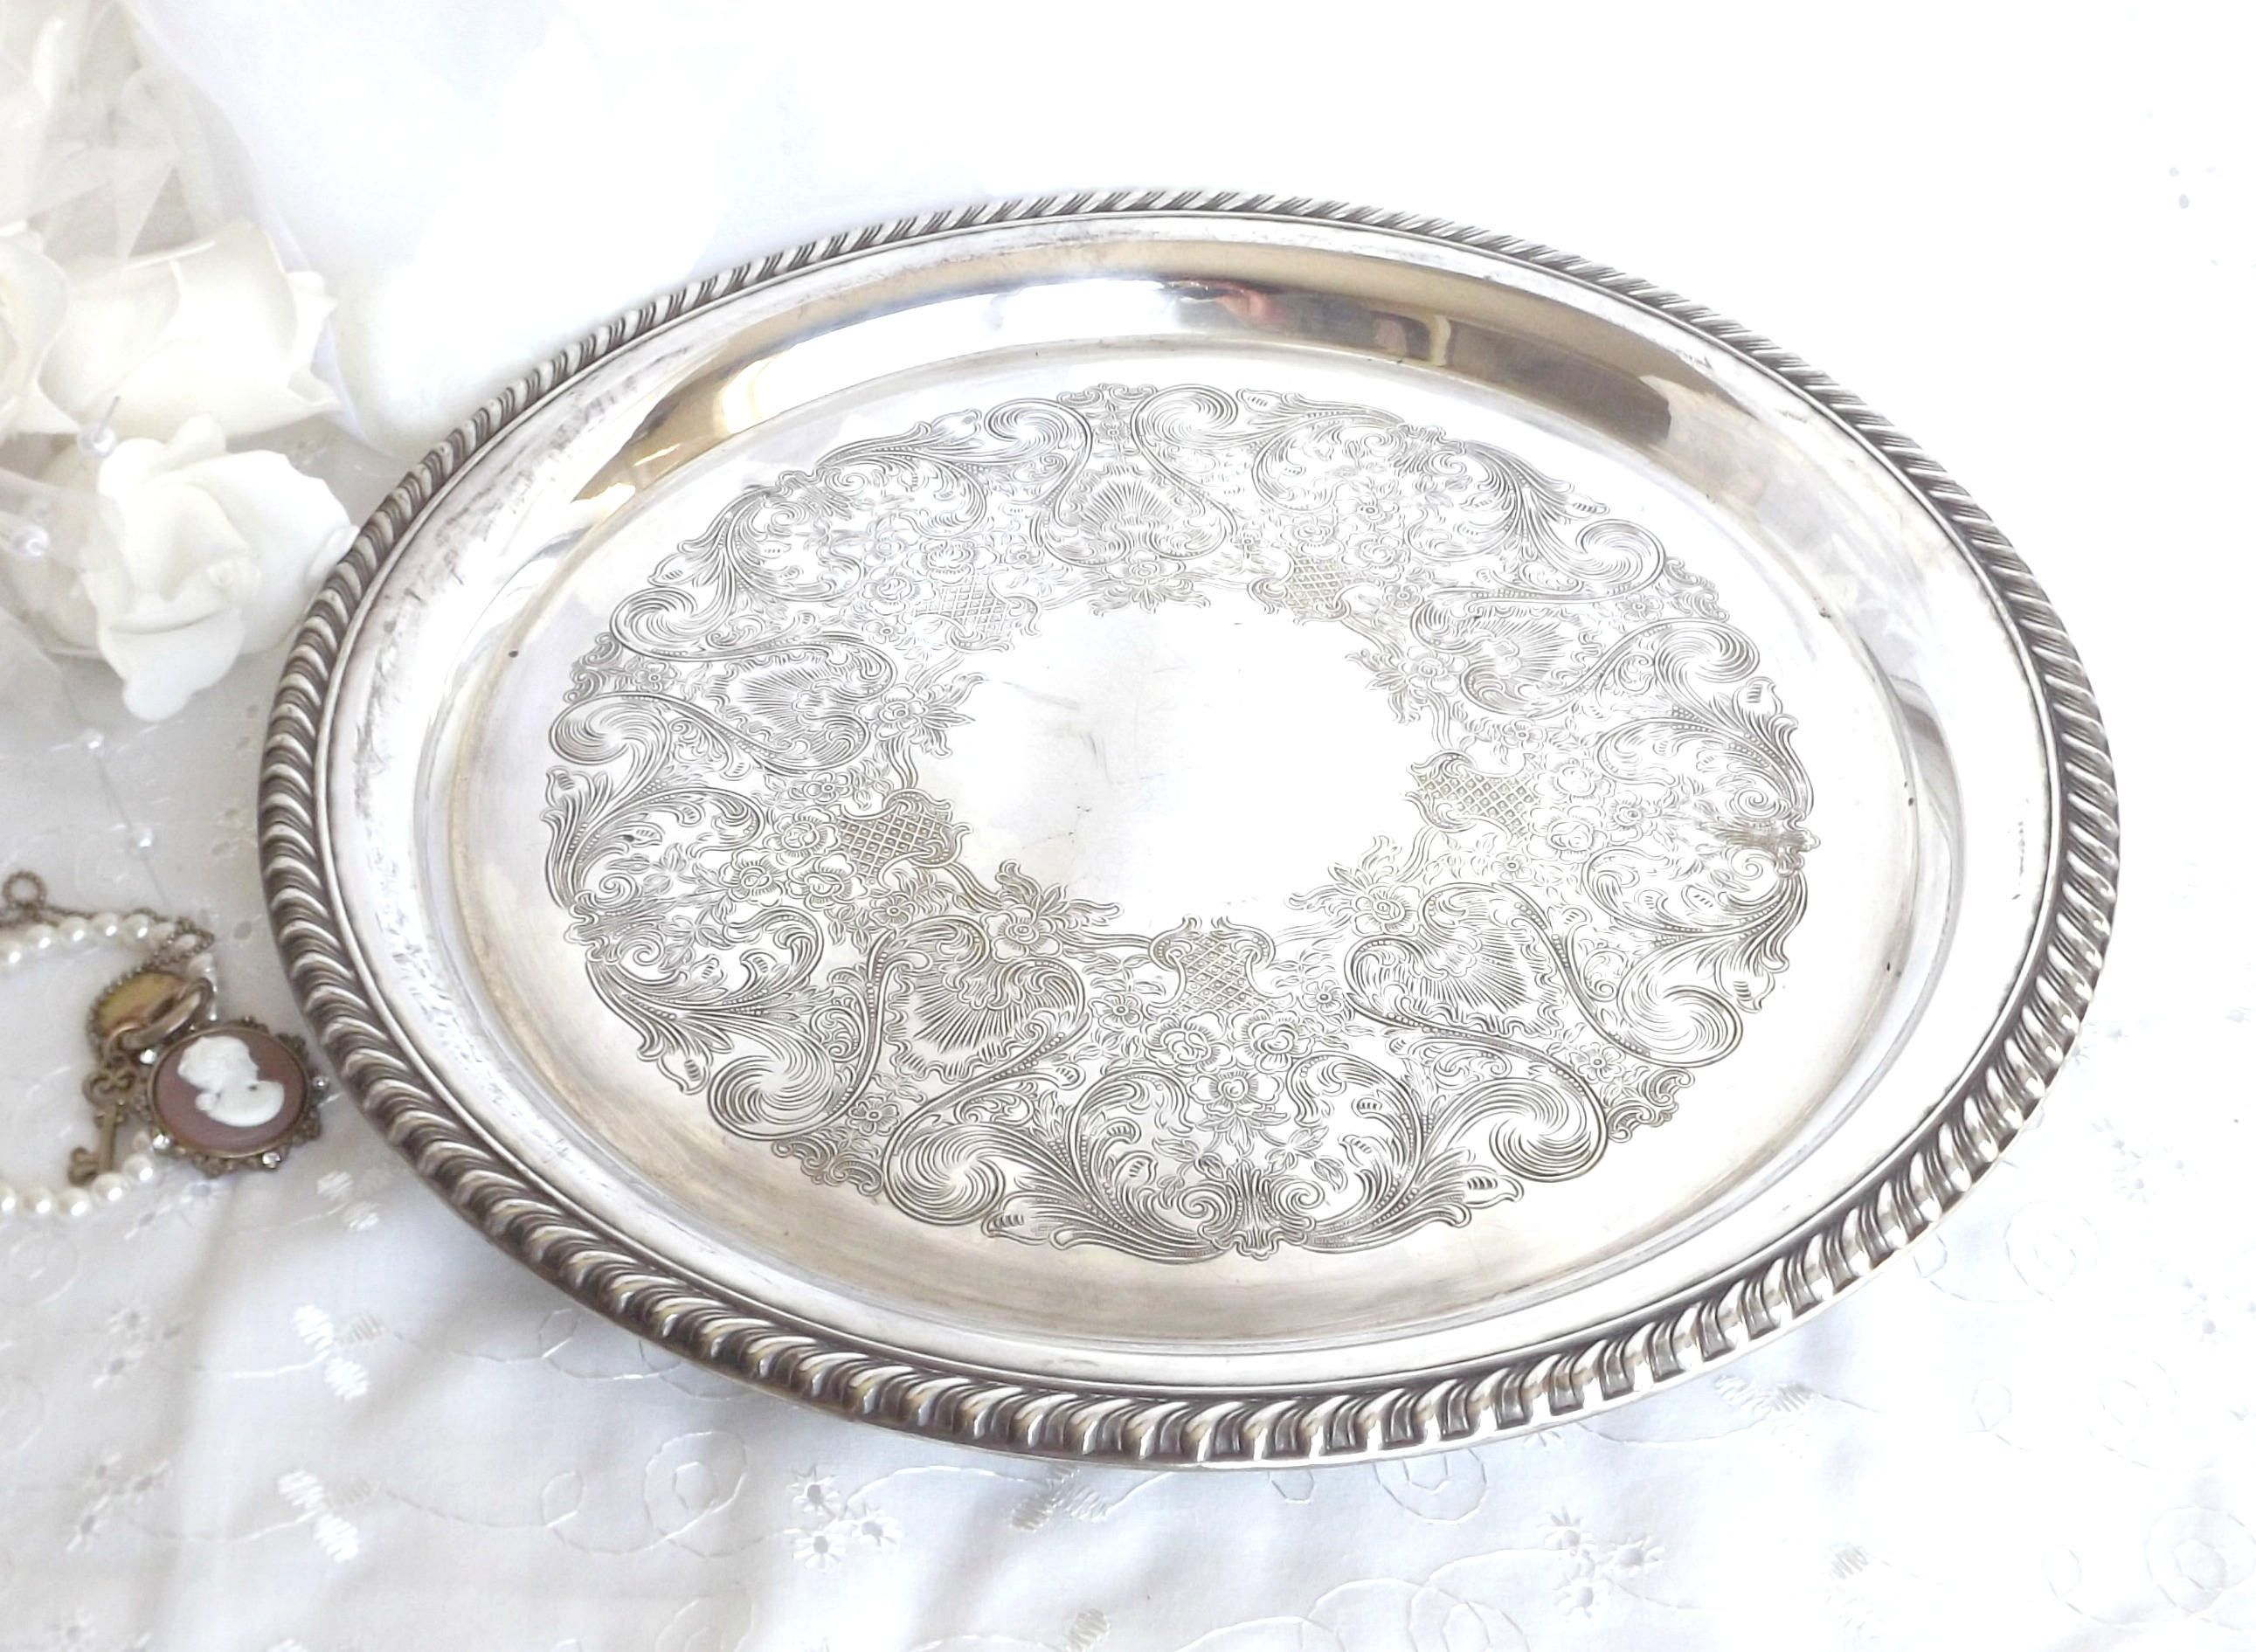 Silver Plated Vanity Tray, Serving Tray, Home Decor, French Farmhouse,  Cottage Chic